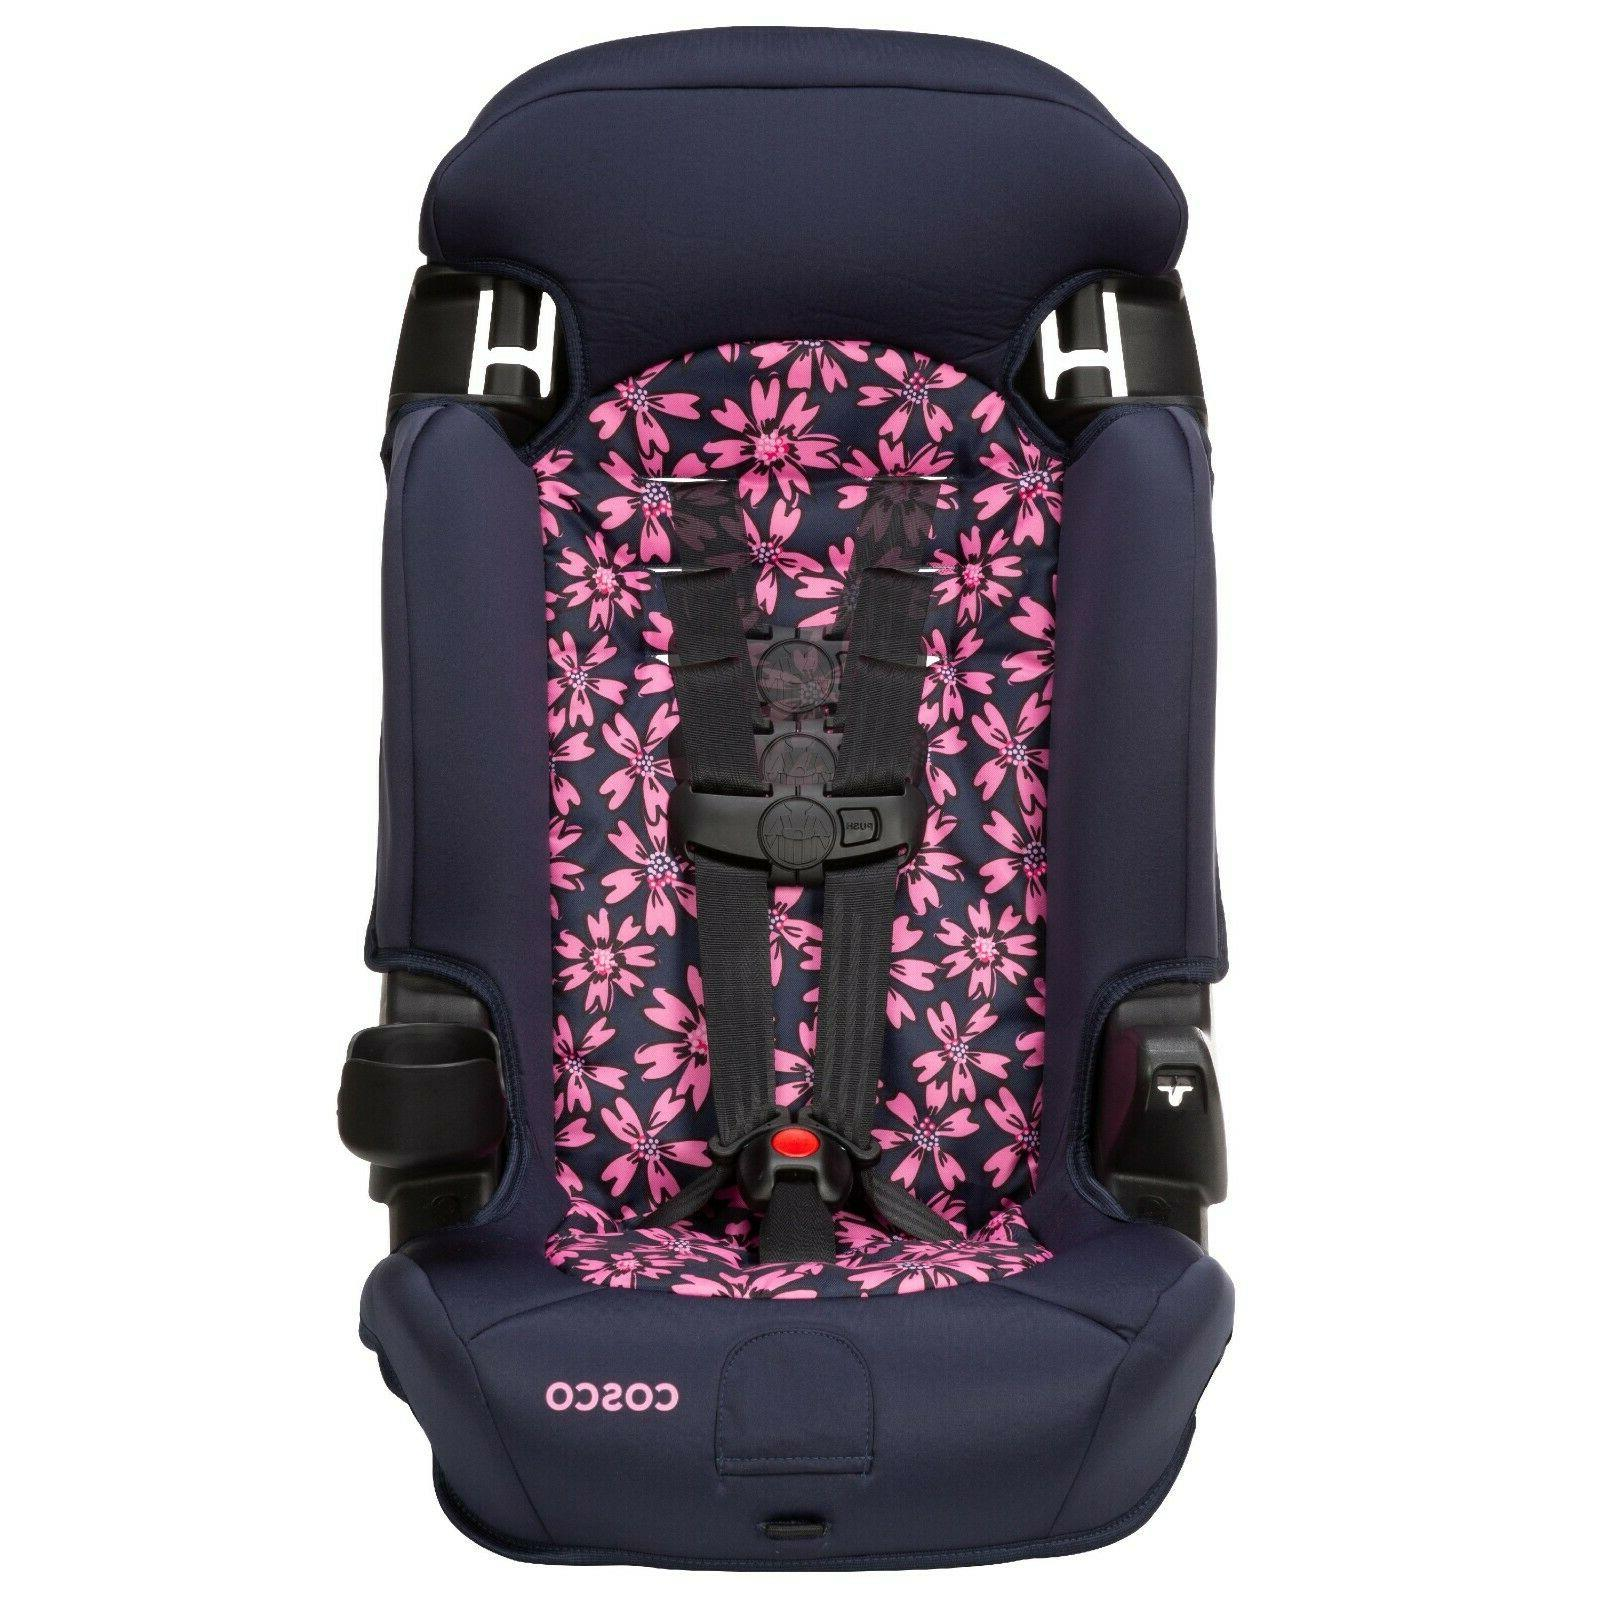 Convertible Car Booster Baby Toddler Travel Car Safety